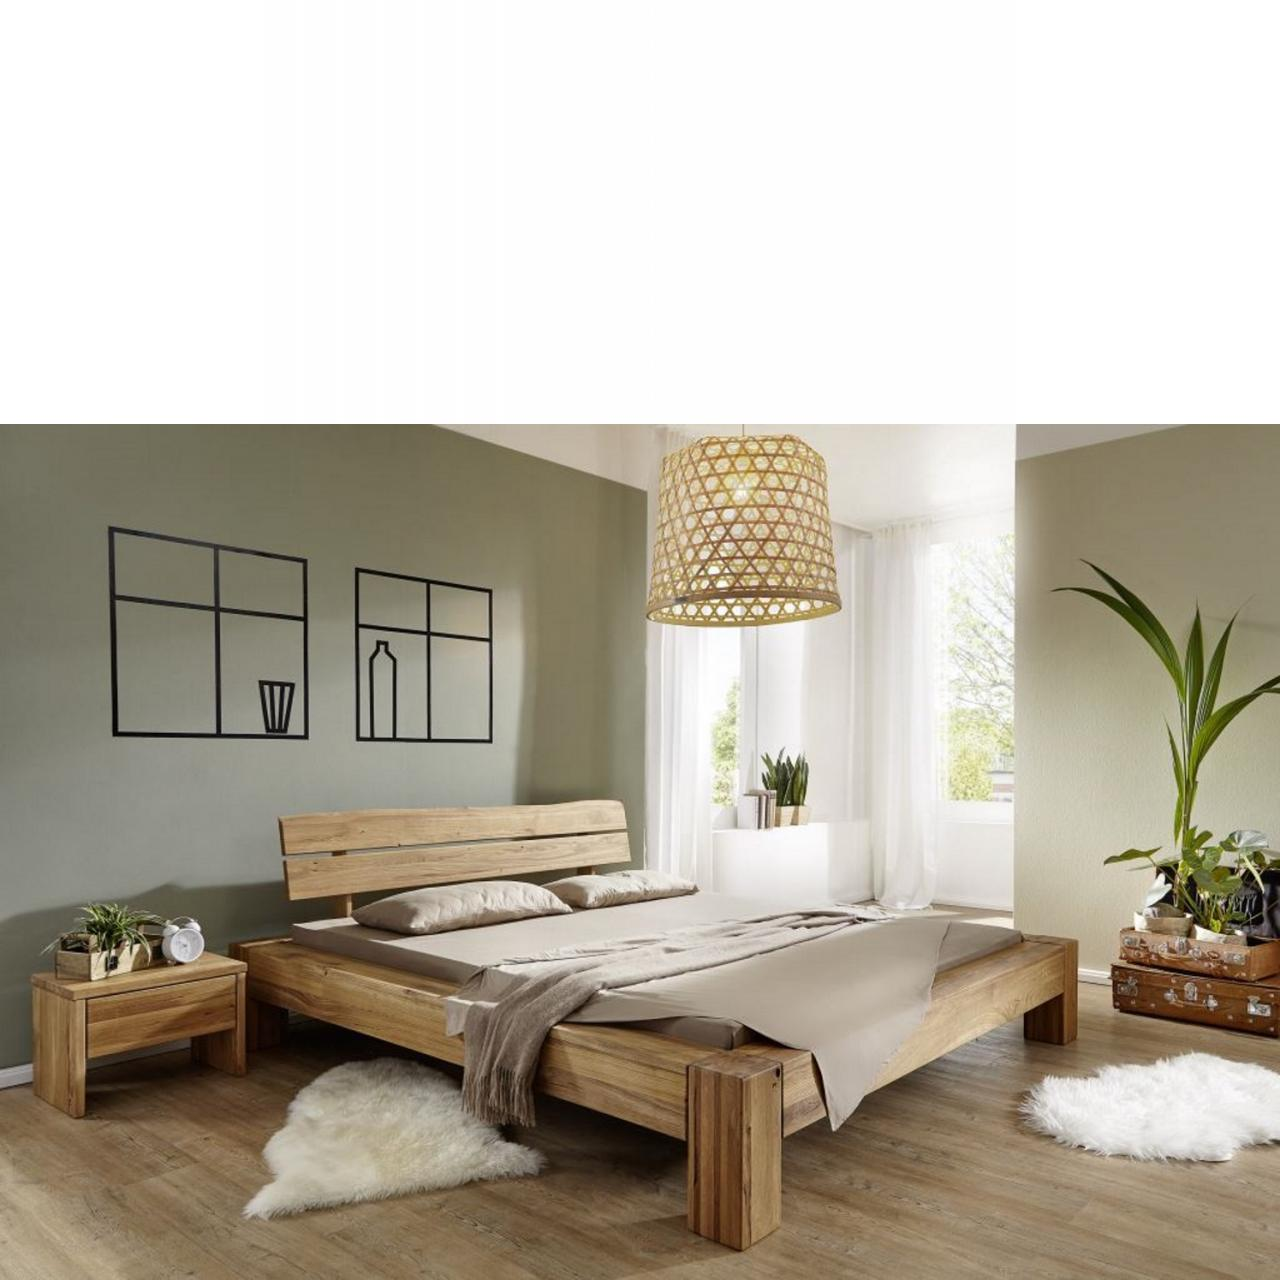 bett wildeiche massiv 140x200 cm mit kopfteil m bel j hnichen center gmbh. Black Bedroom Furniture Sets. Home Design Ideas